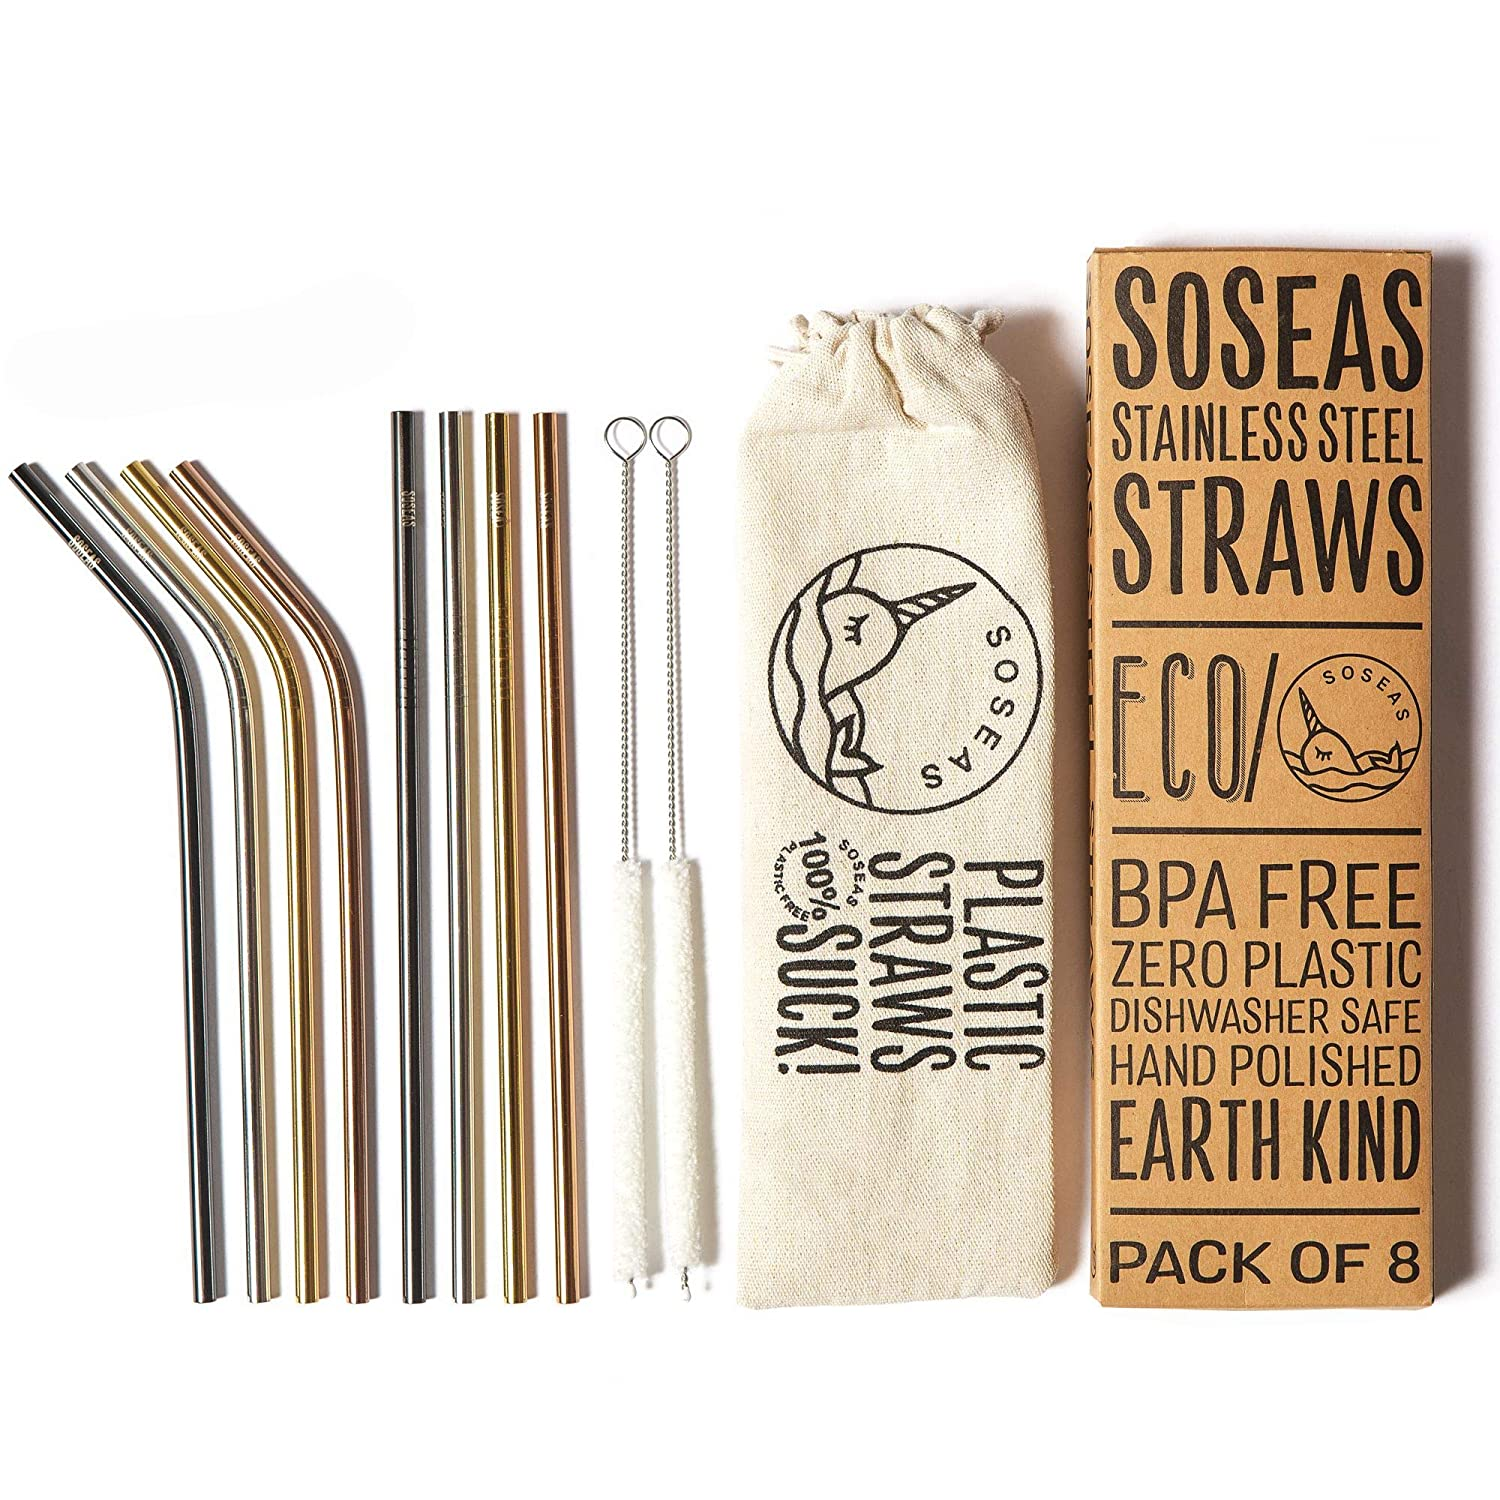 8 Pack Stainless Steel Eco Drinking Straws Reusable Metal Straws by Soseas Rose Gold Gold Silver and Black Plastic-Free with Cotton Cleaning Brushes and Linen Carry Case 4 Bent 4 Straight